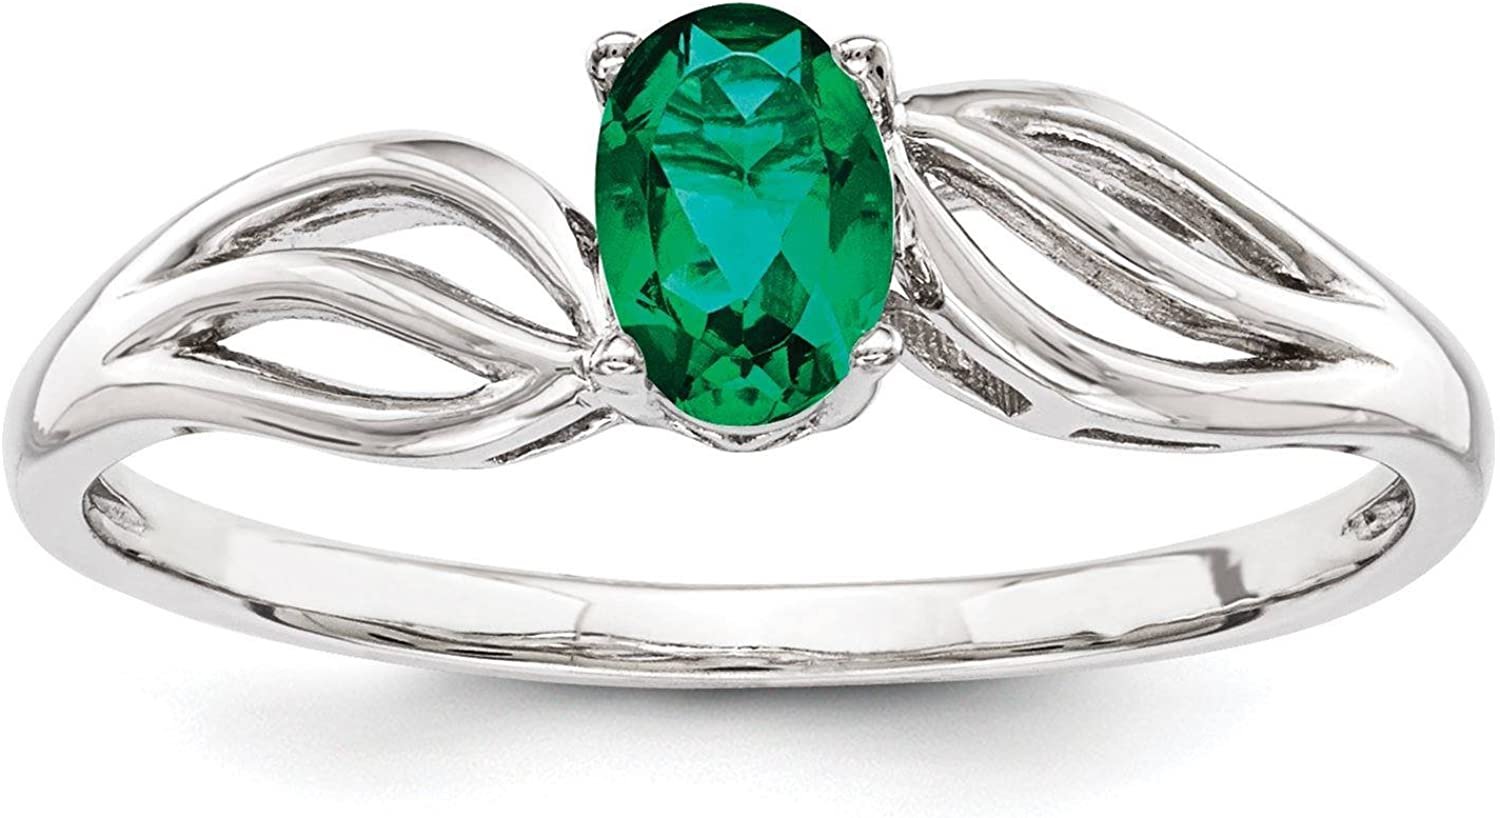 925 Sterling Silver Rhodium-finish Created-Emerald May Stone Ring Size 5-10